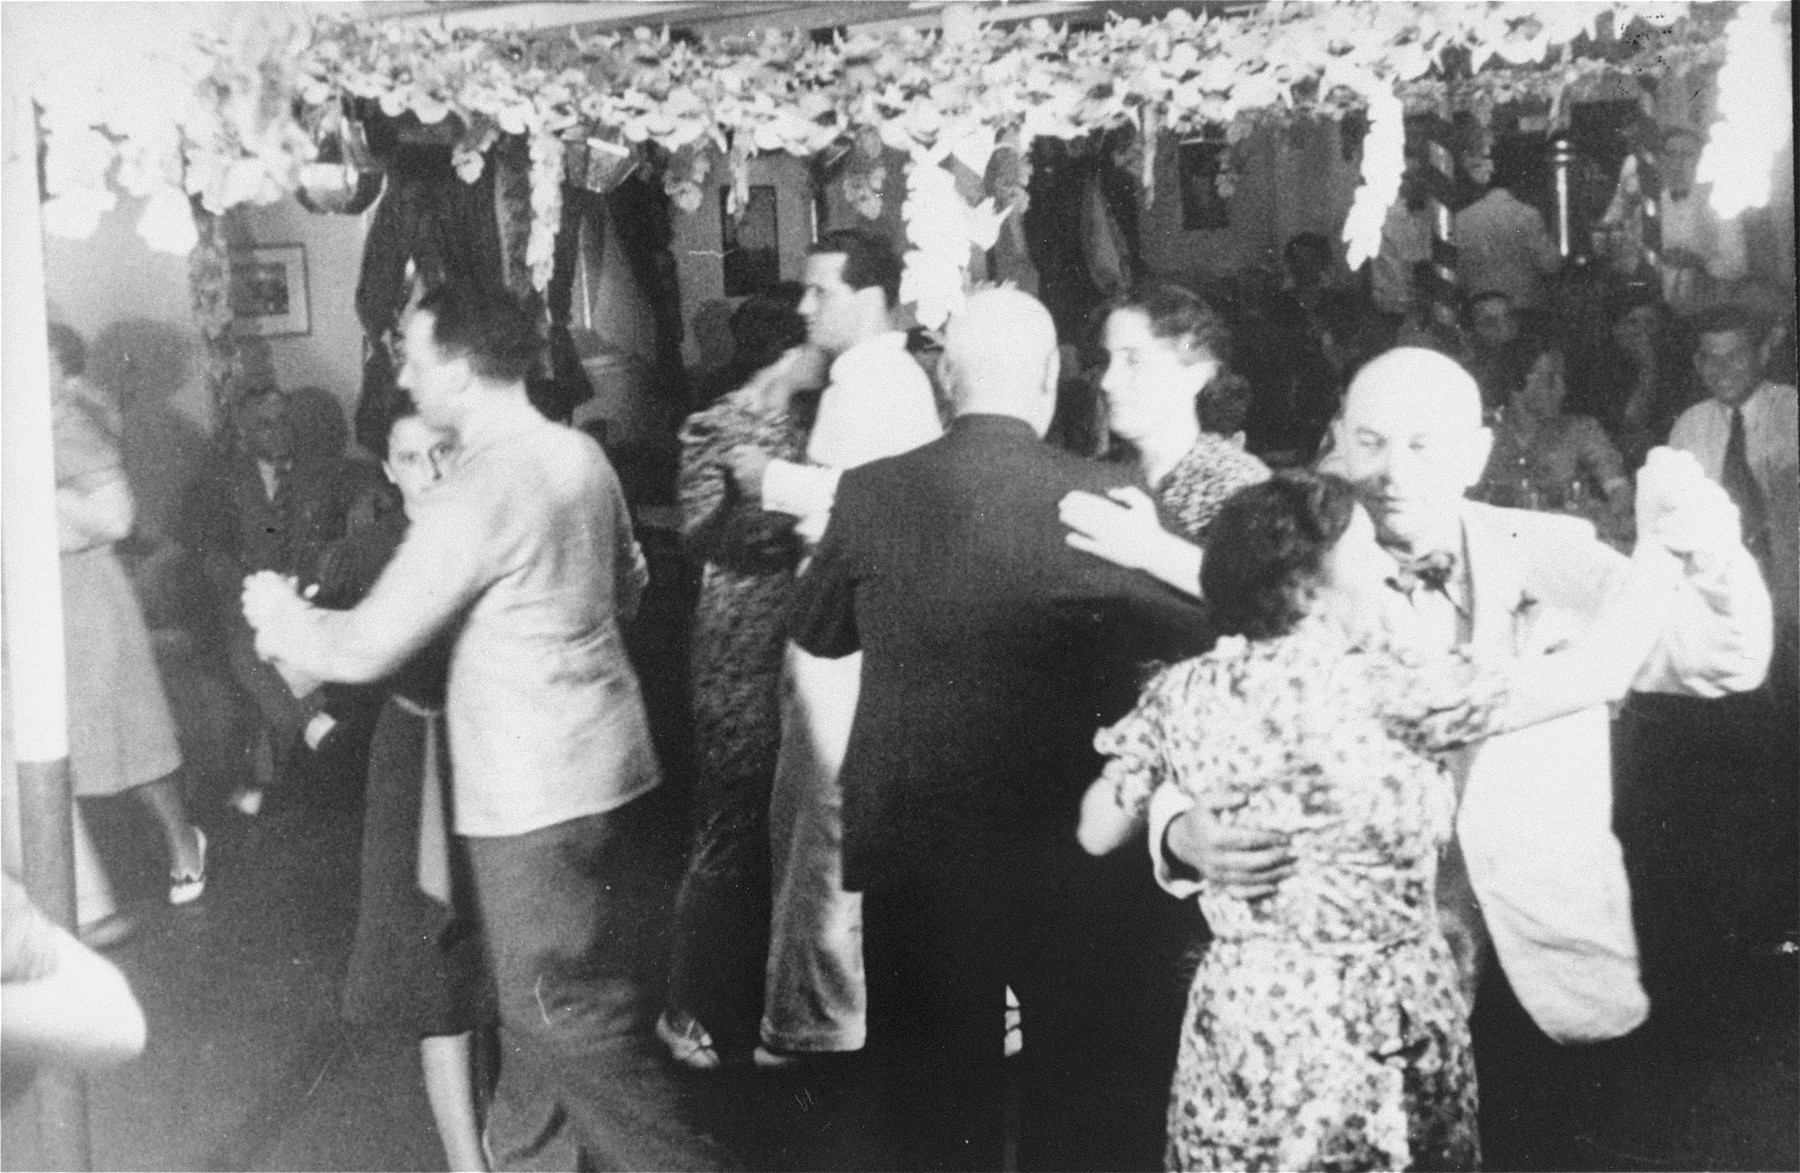 Passengers dancing on board the MS St. Louis.  Rita Goldstein is pictured at the lower right.